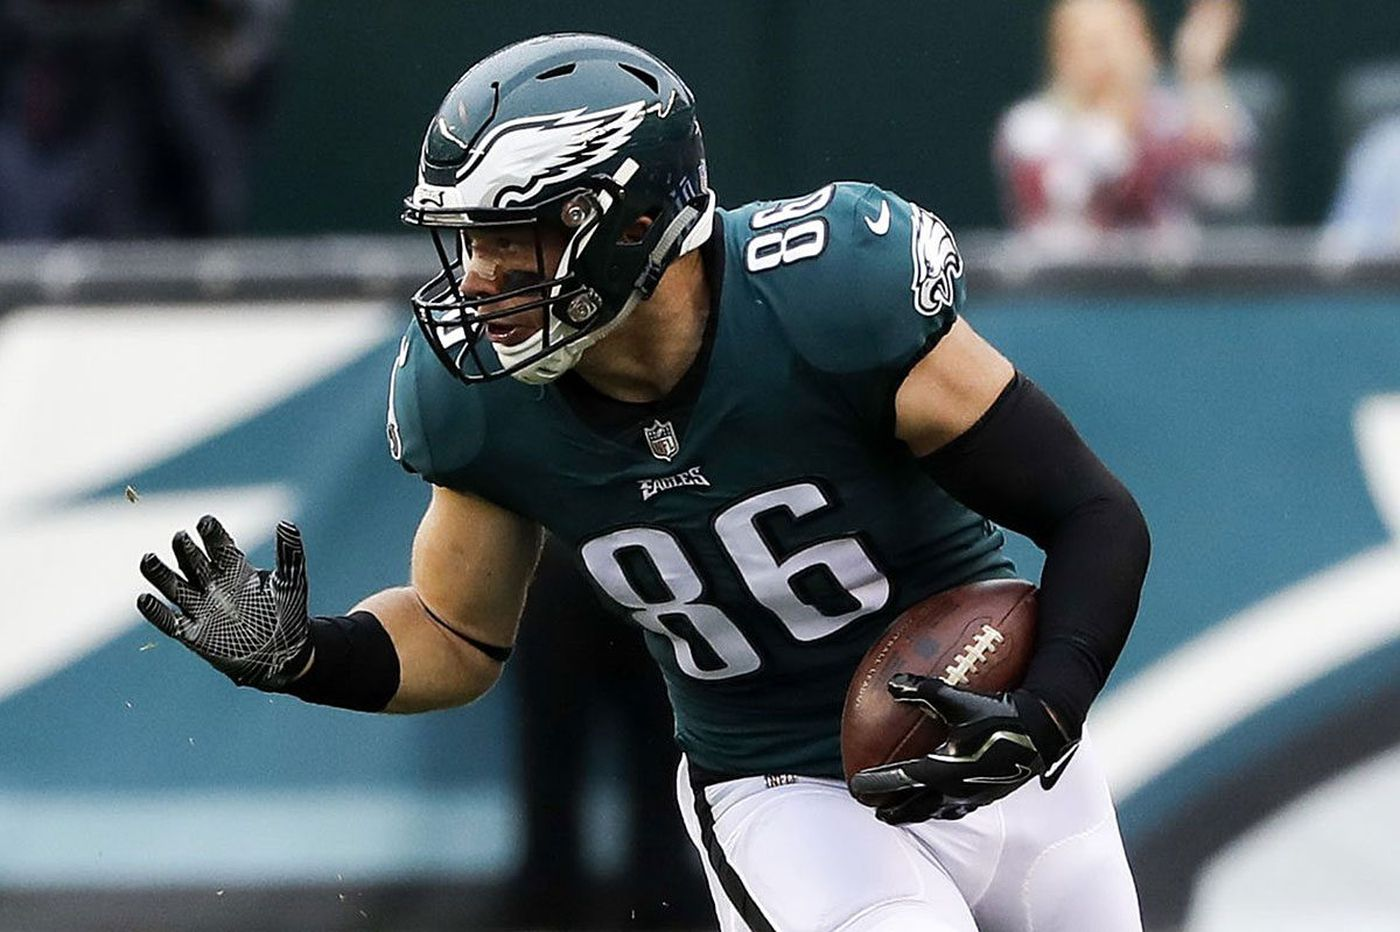 Eagles-Broncos inactives: Zach Ertz out, Jay Ajayi to play